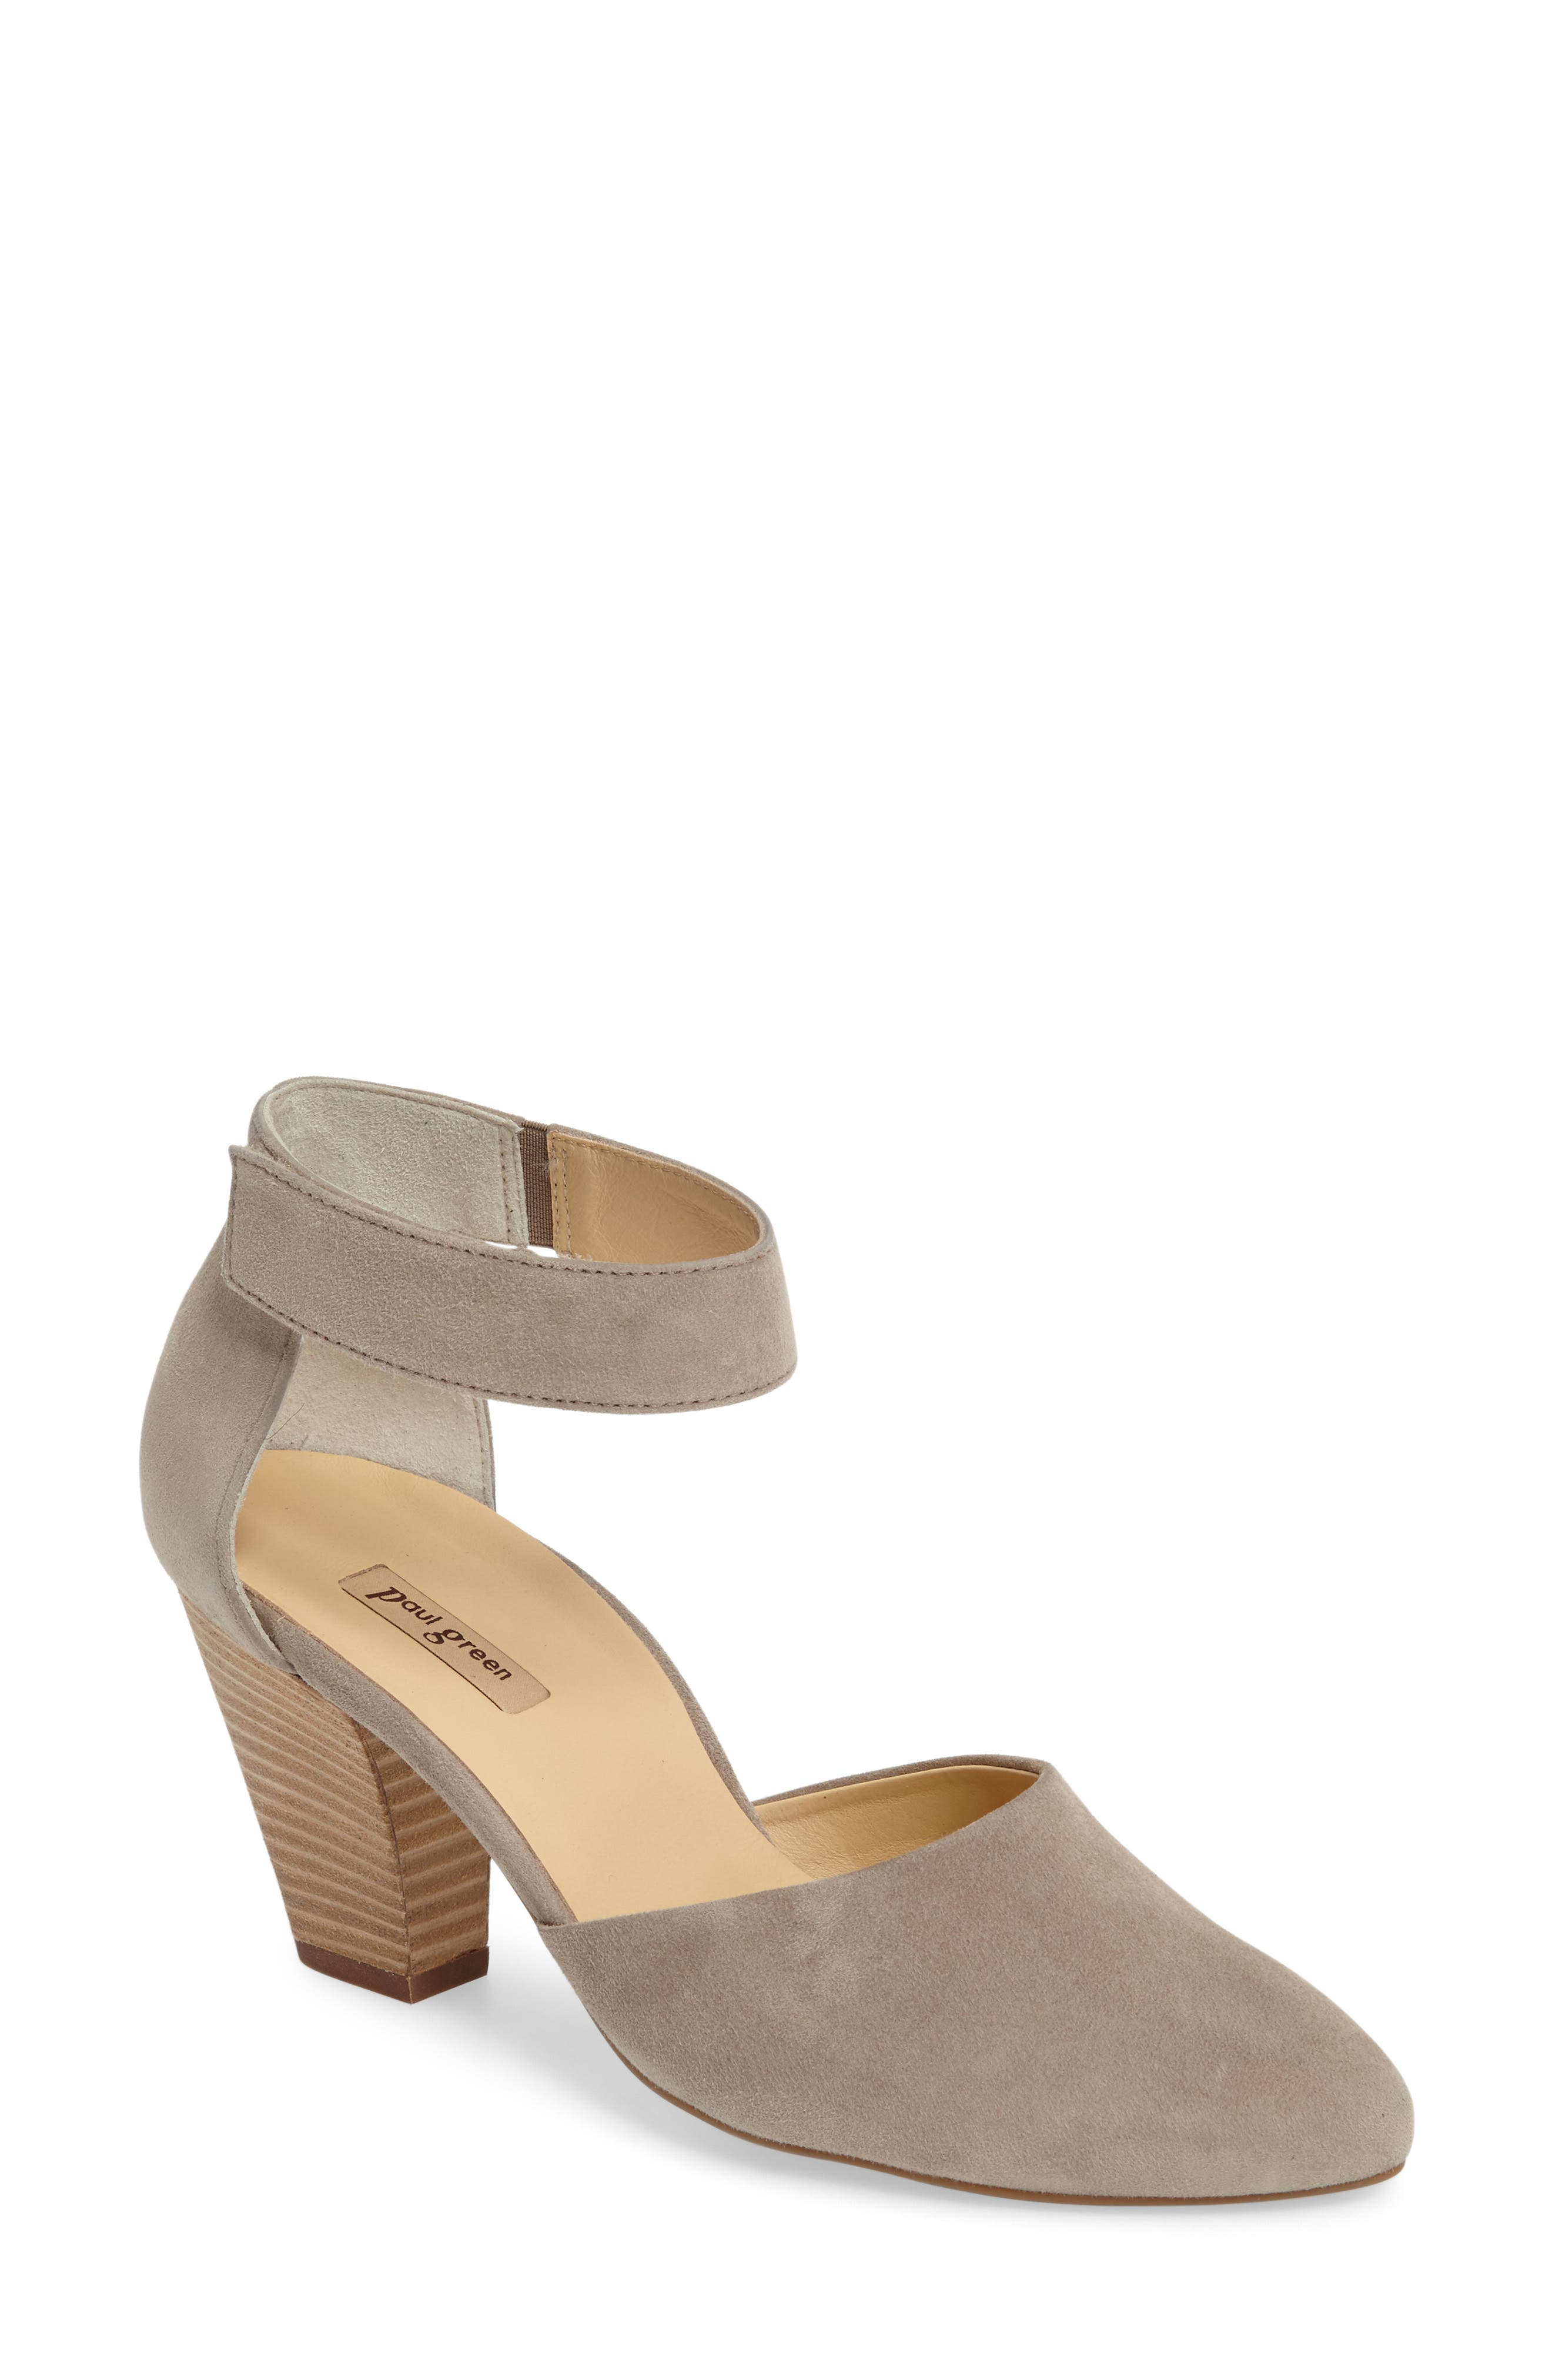 Noreen Pump,                         Main,                         color, Taupe Suede